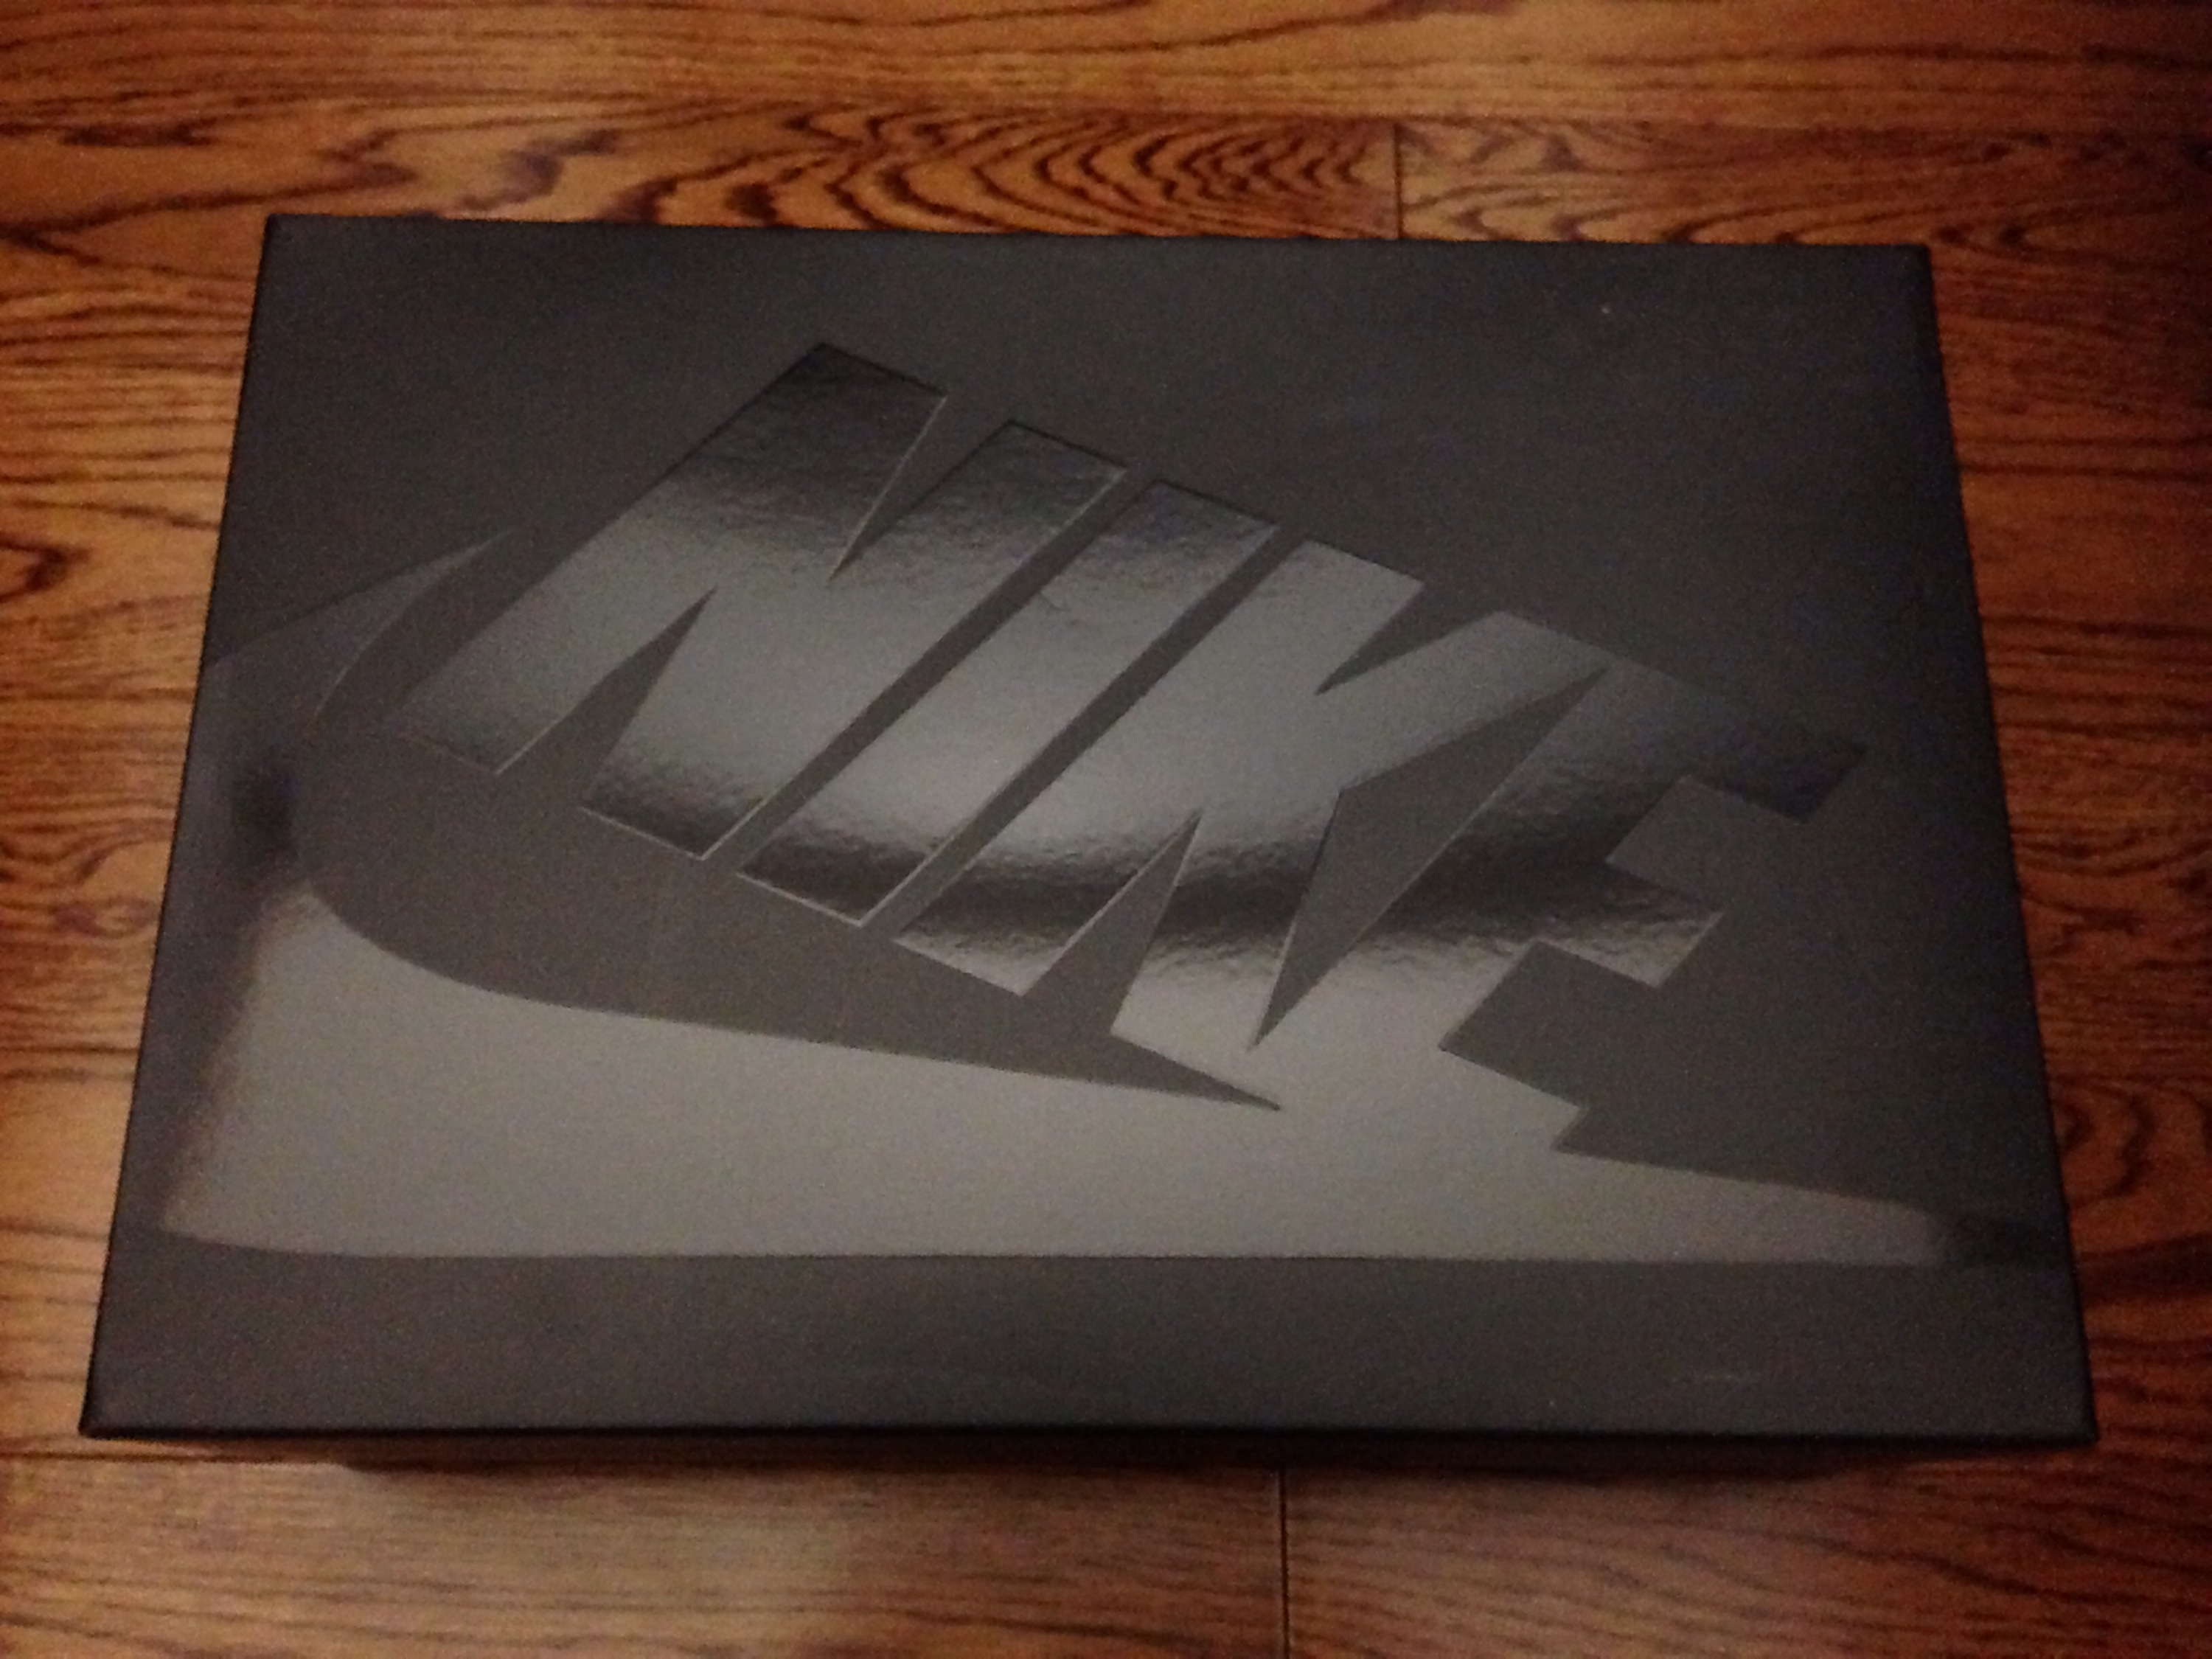 Nike Foamposite Box